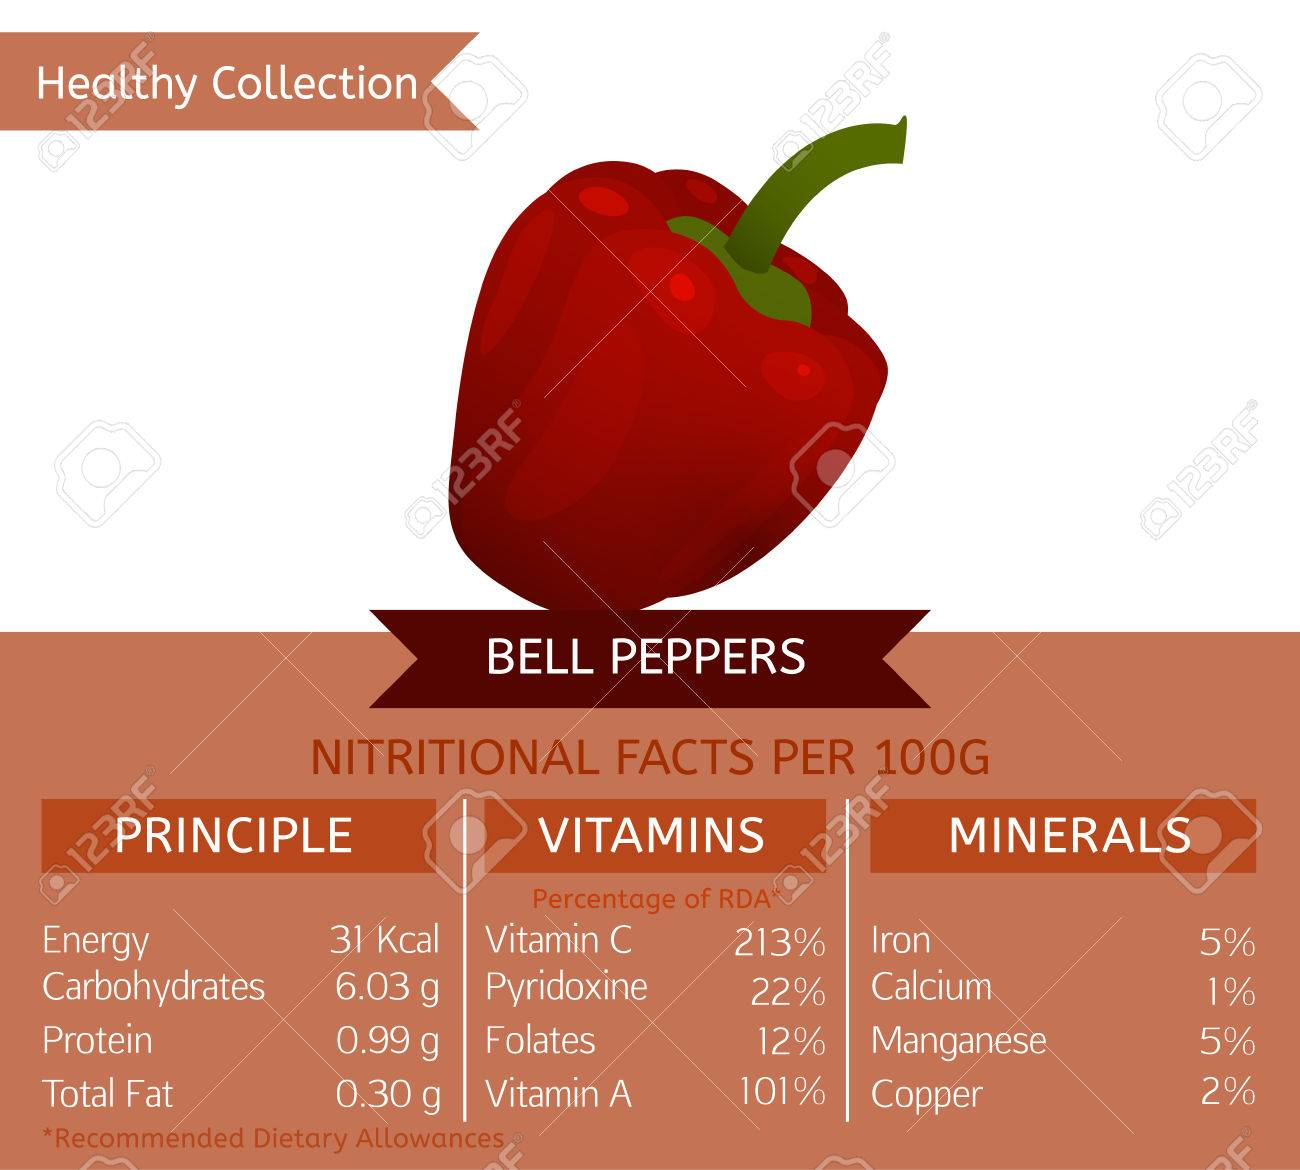 bell peppers benefits. vector illustration with useful nutritional